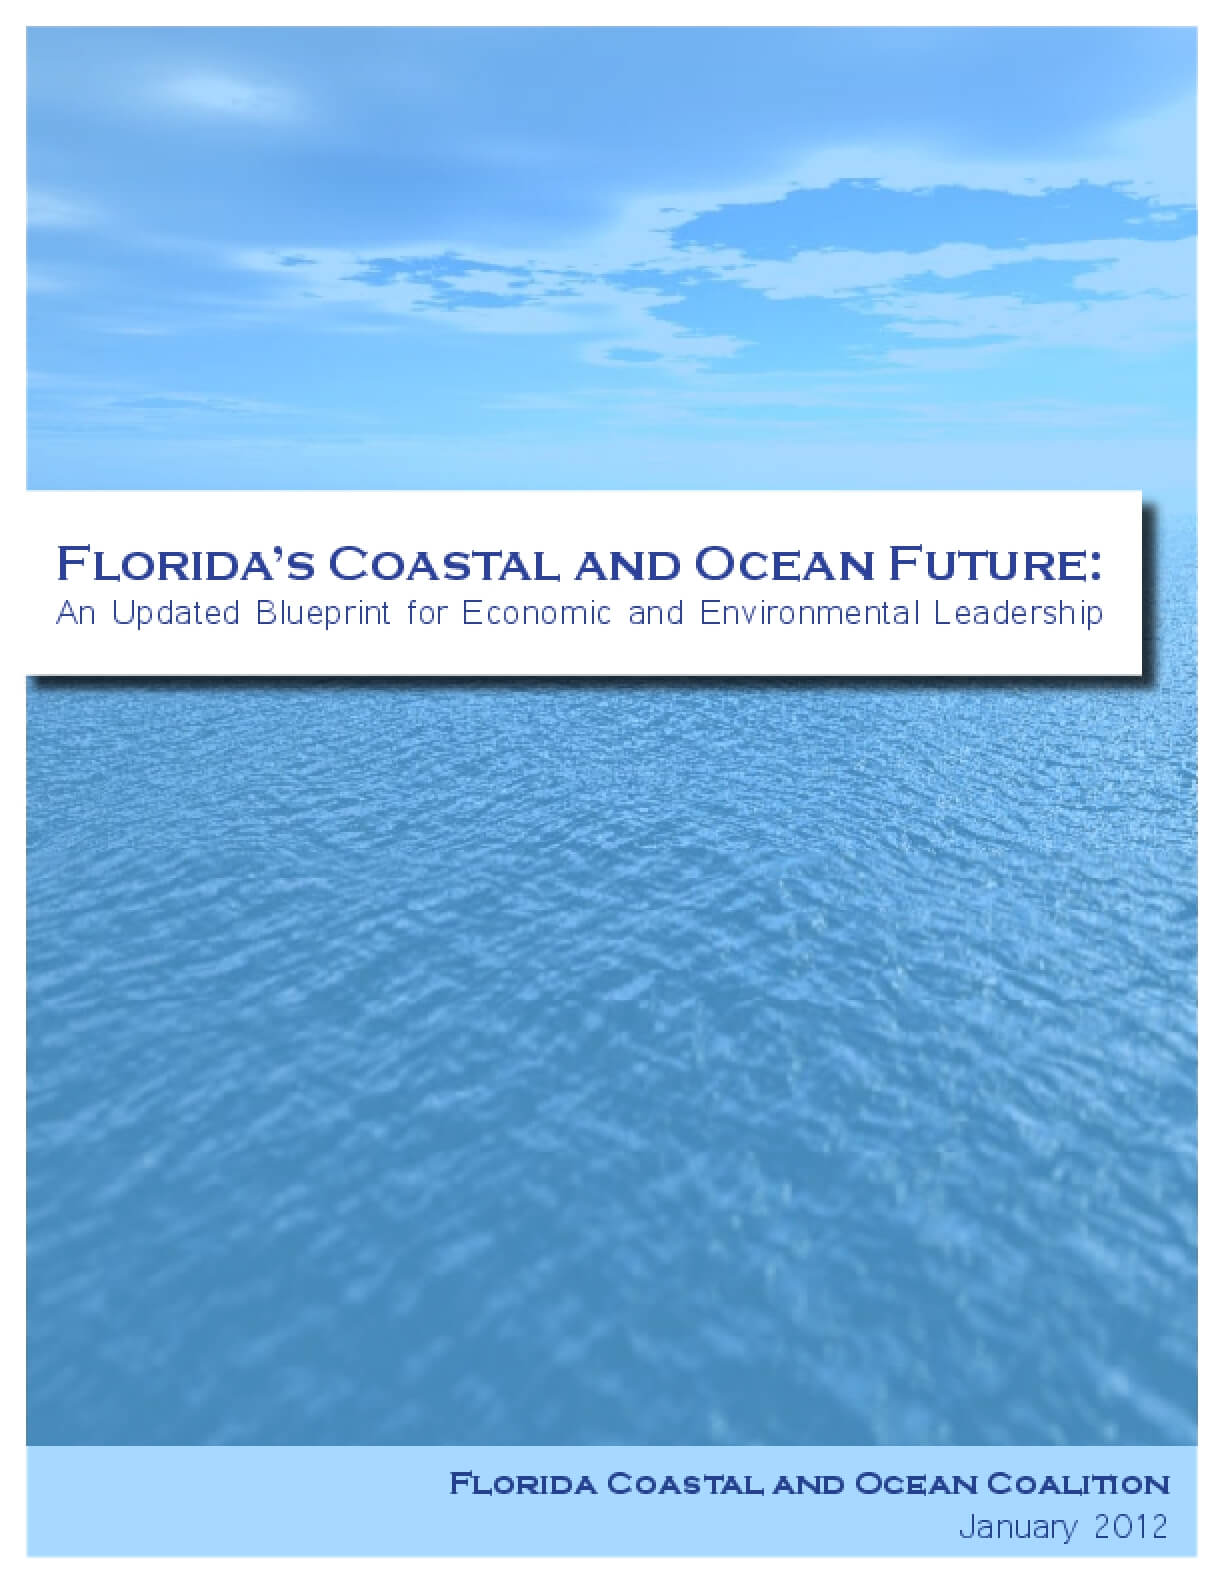 Florida's Coastal and Ocean Future: An Updated Blueprint for Economic and Environmental Leadership